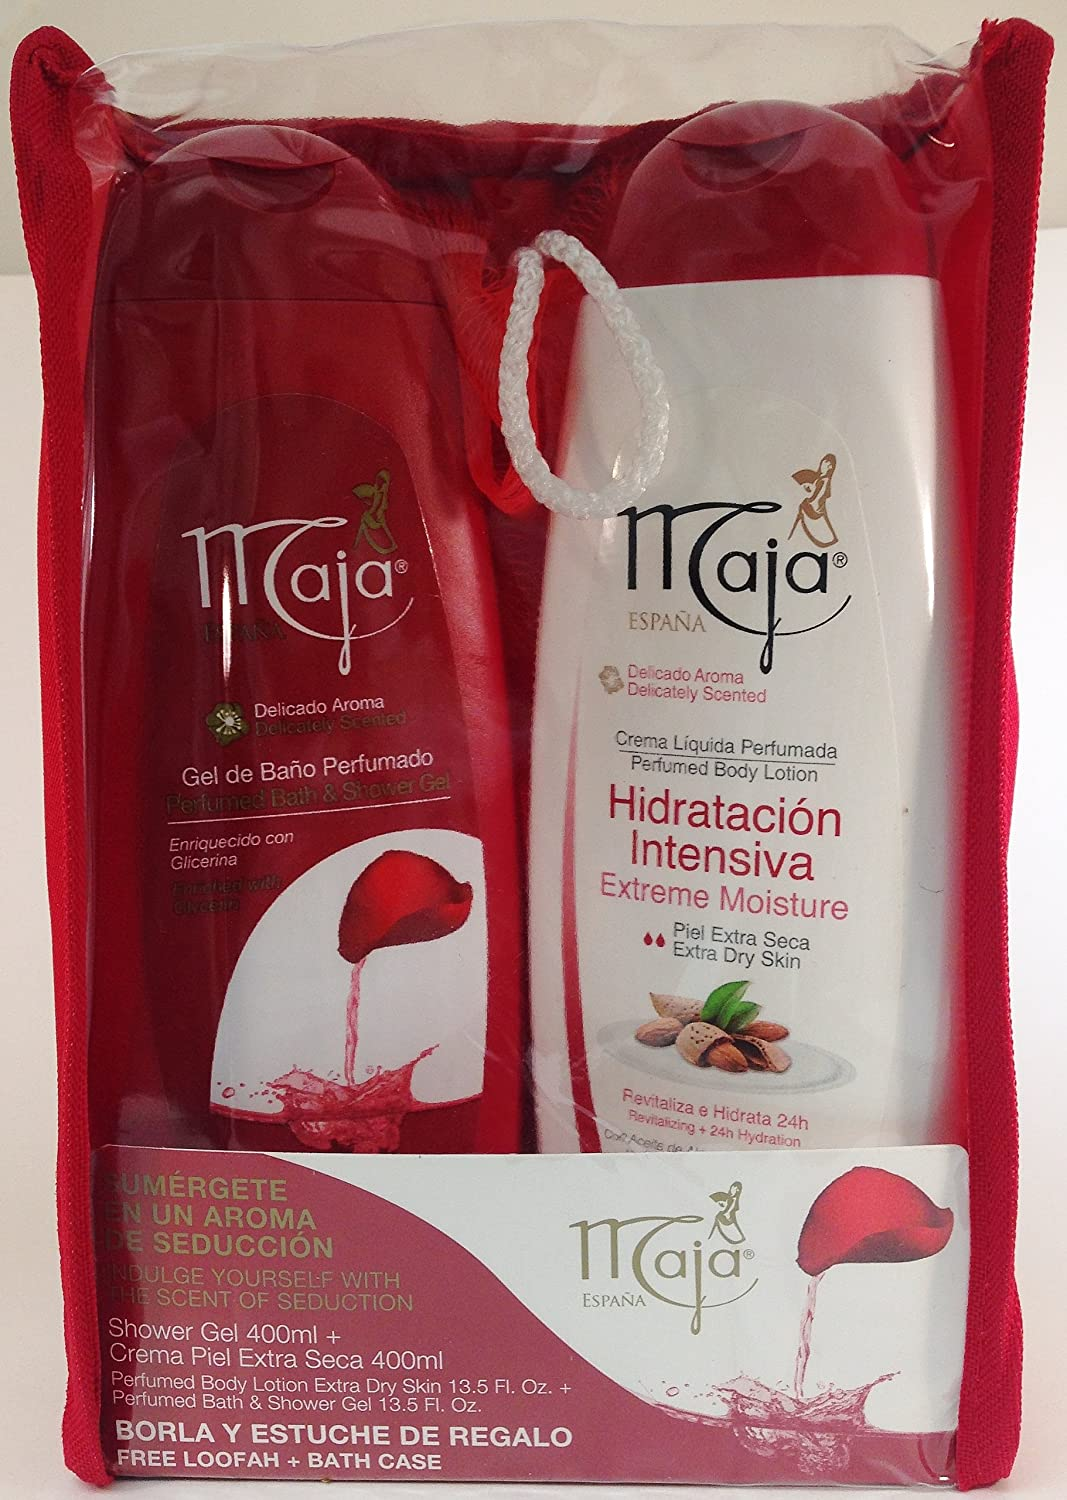 Maja Gift Set (Bath Gel 13.5 Oz. & Body Lotion 13.5 Oz.) With Free Loofah-Borla Y Estuche Regalo